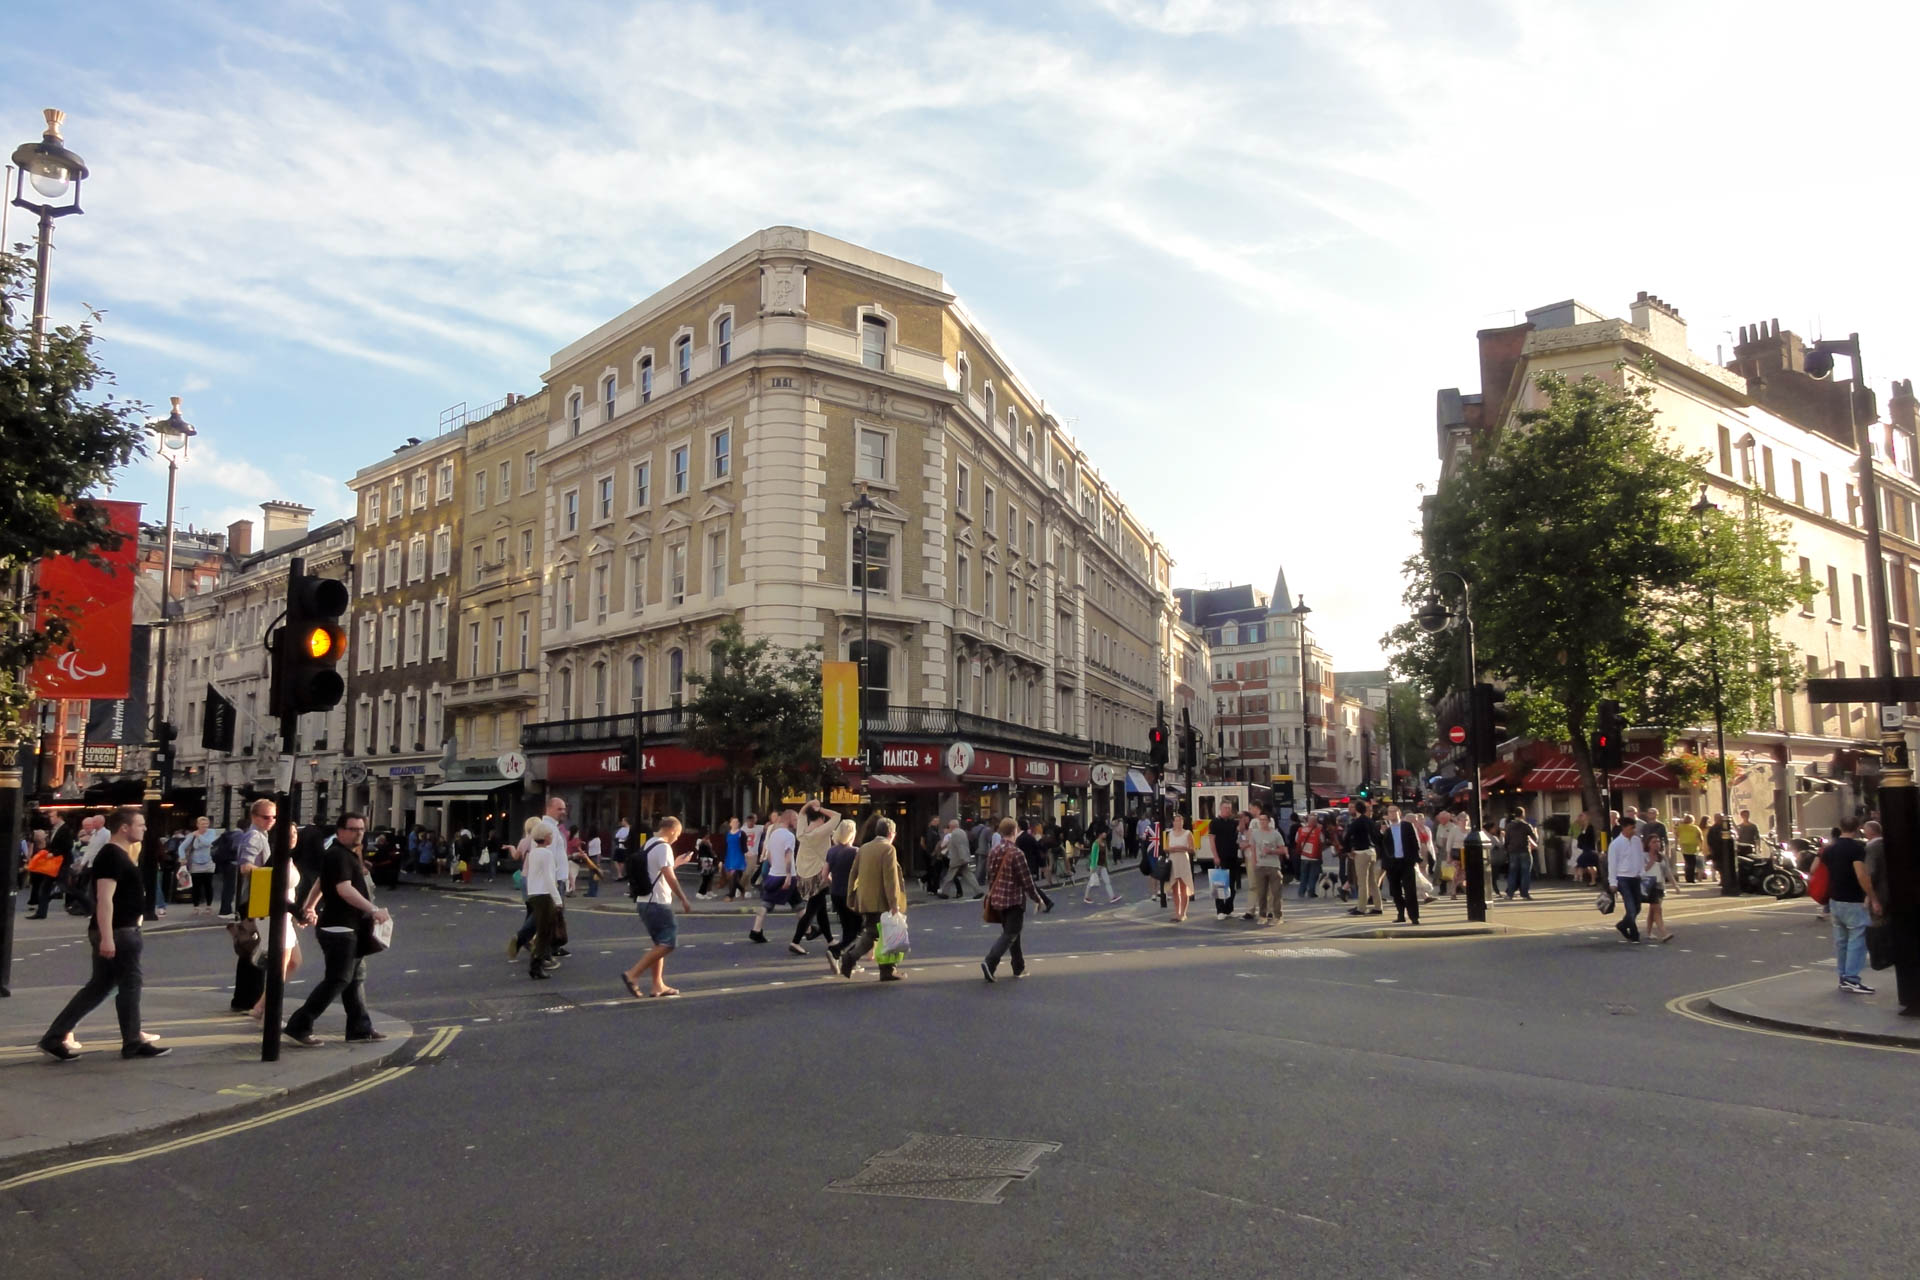 London Pedestrian Scramble